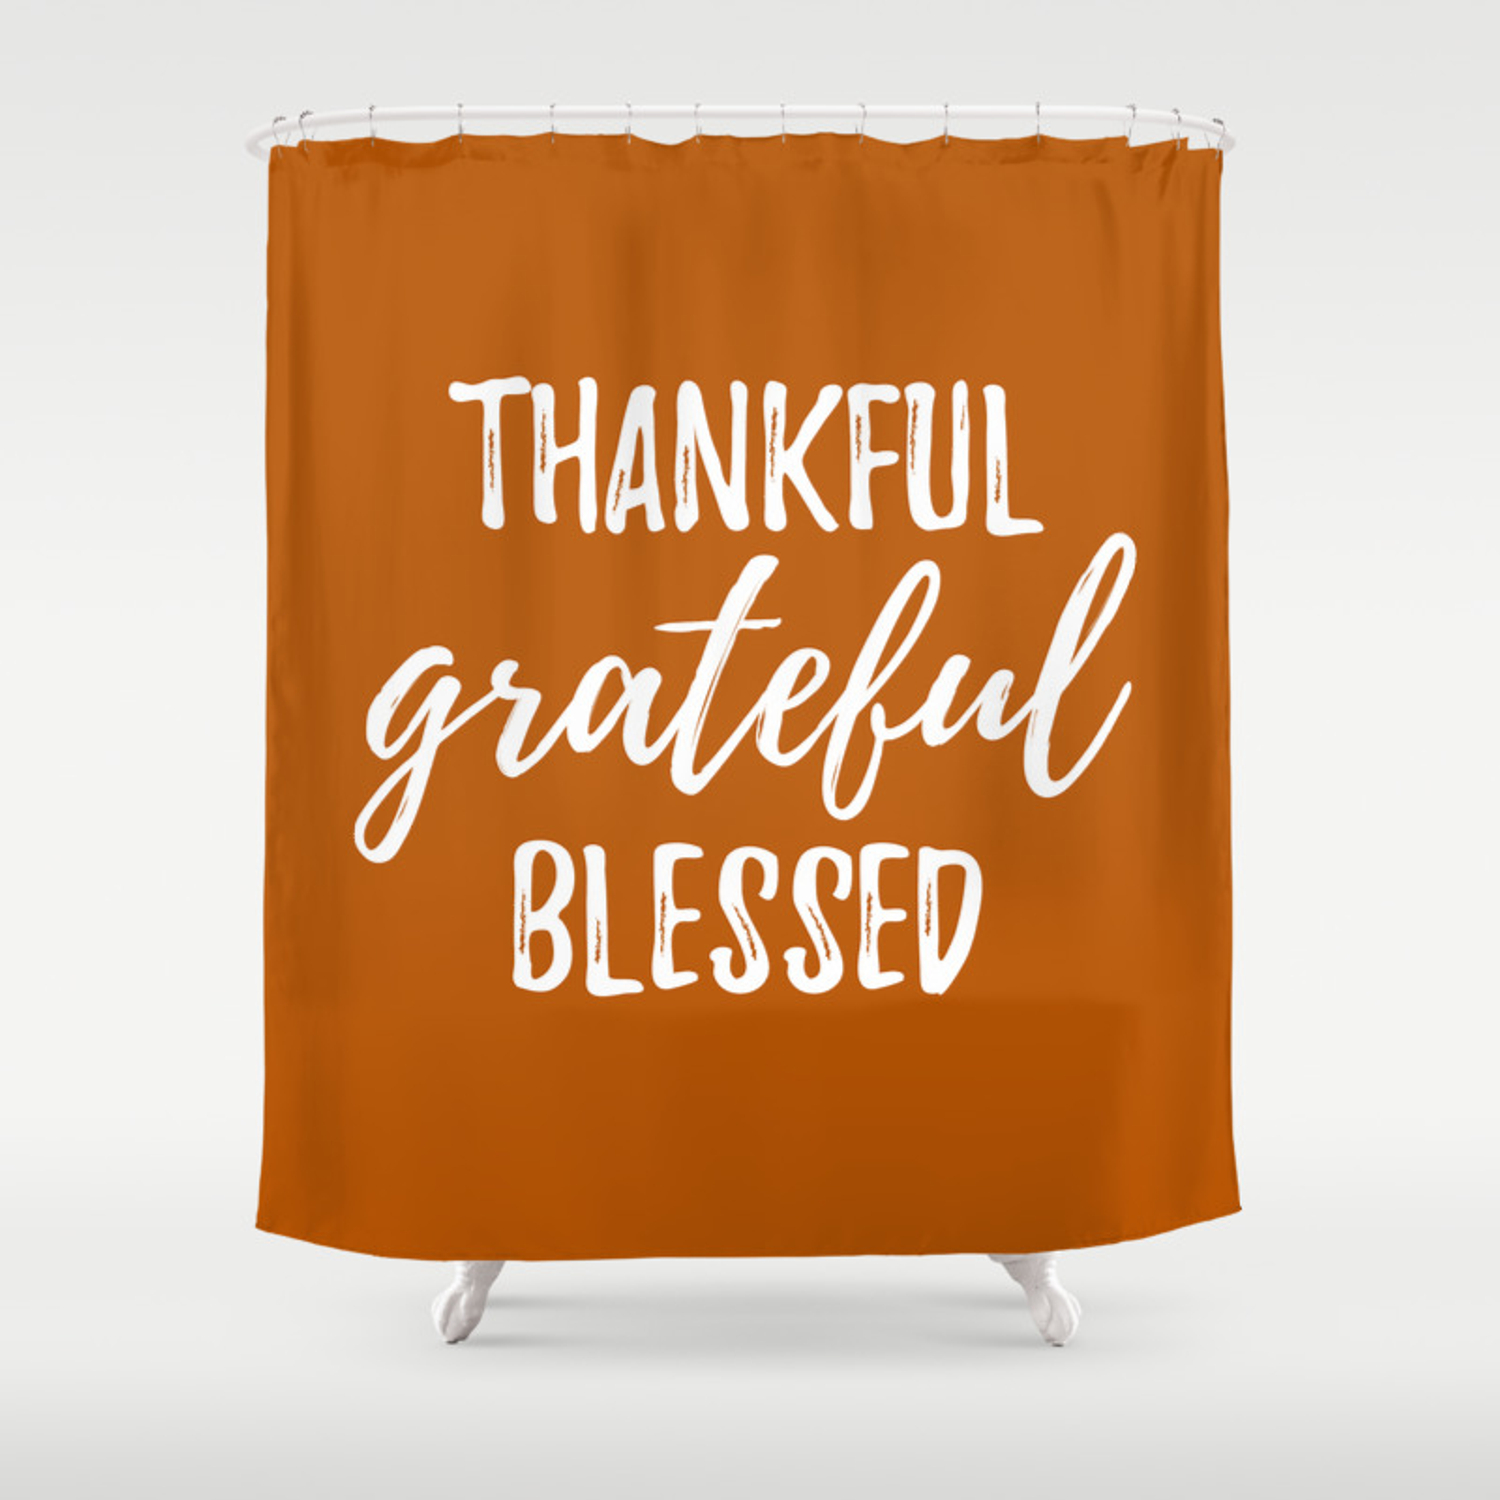 Thankful Grateful Blessed Orange And White Script Shower Curtain By Heartlandlettering Society6